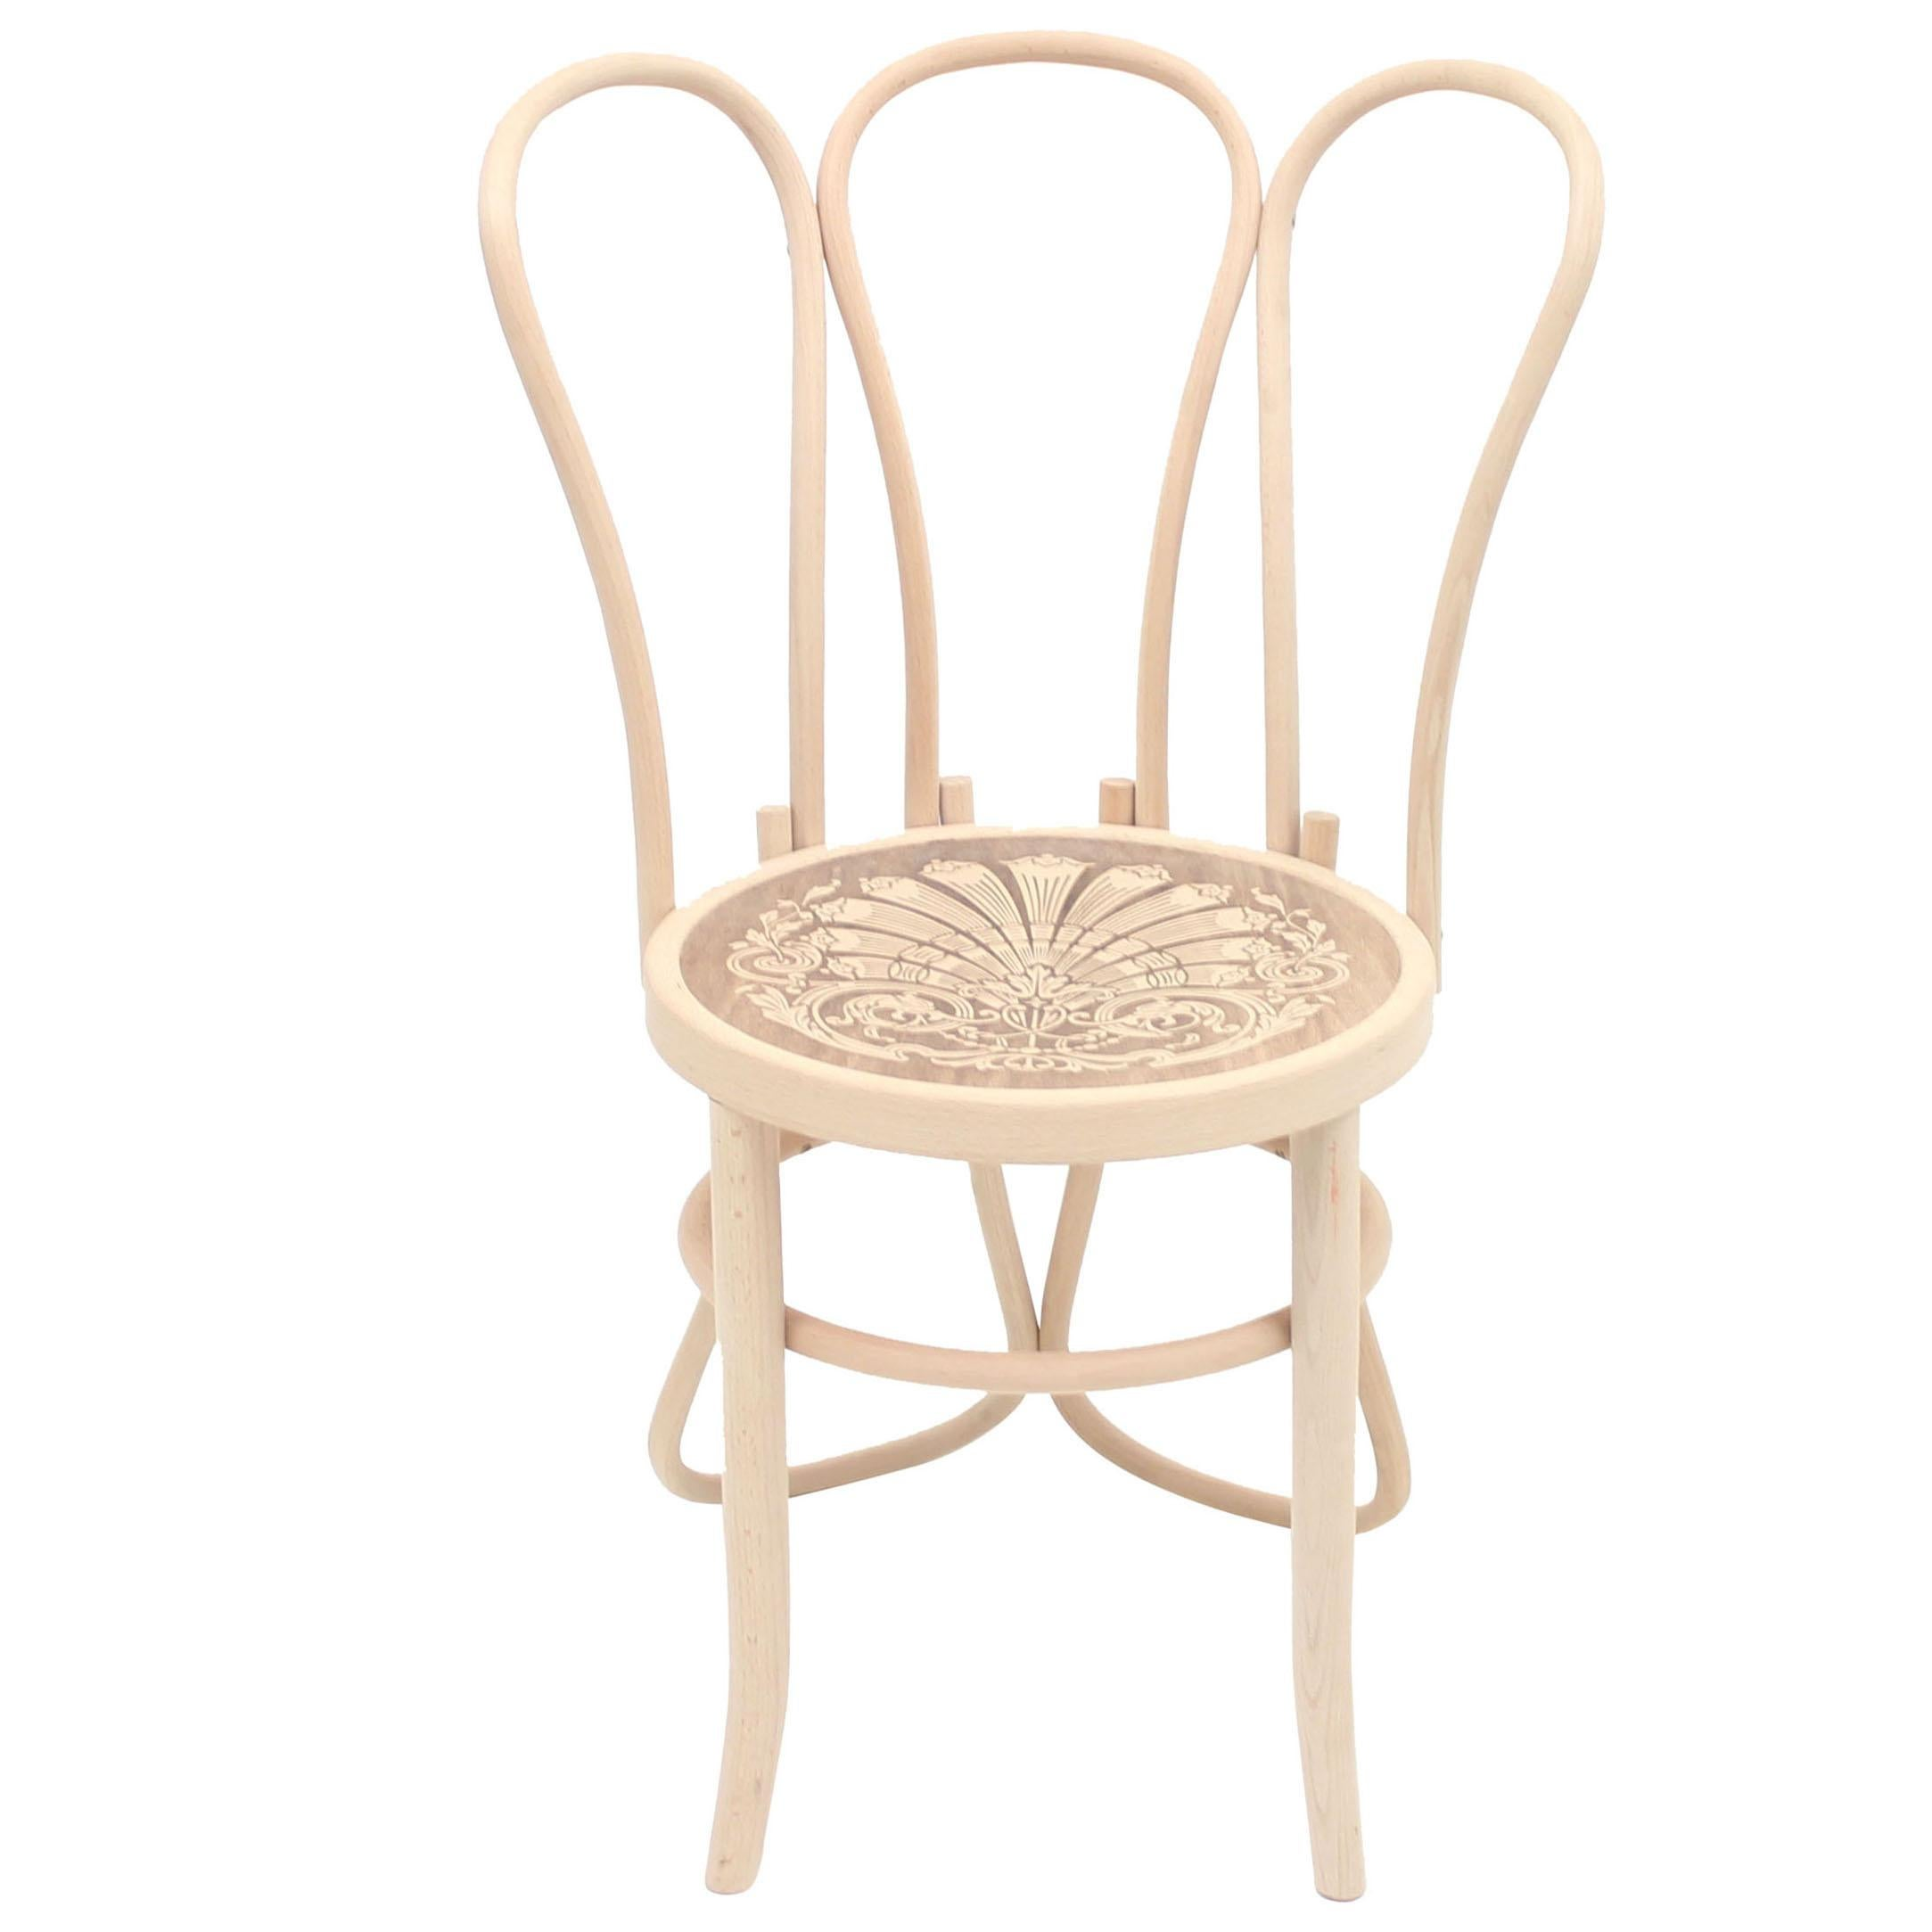 Back of the Chairs by Martino Gamper for the Conran Shop/Thonet, 2008